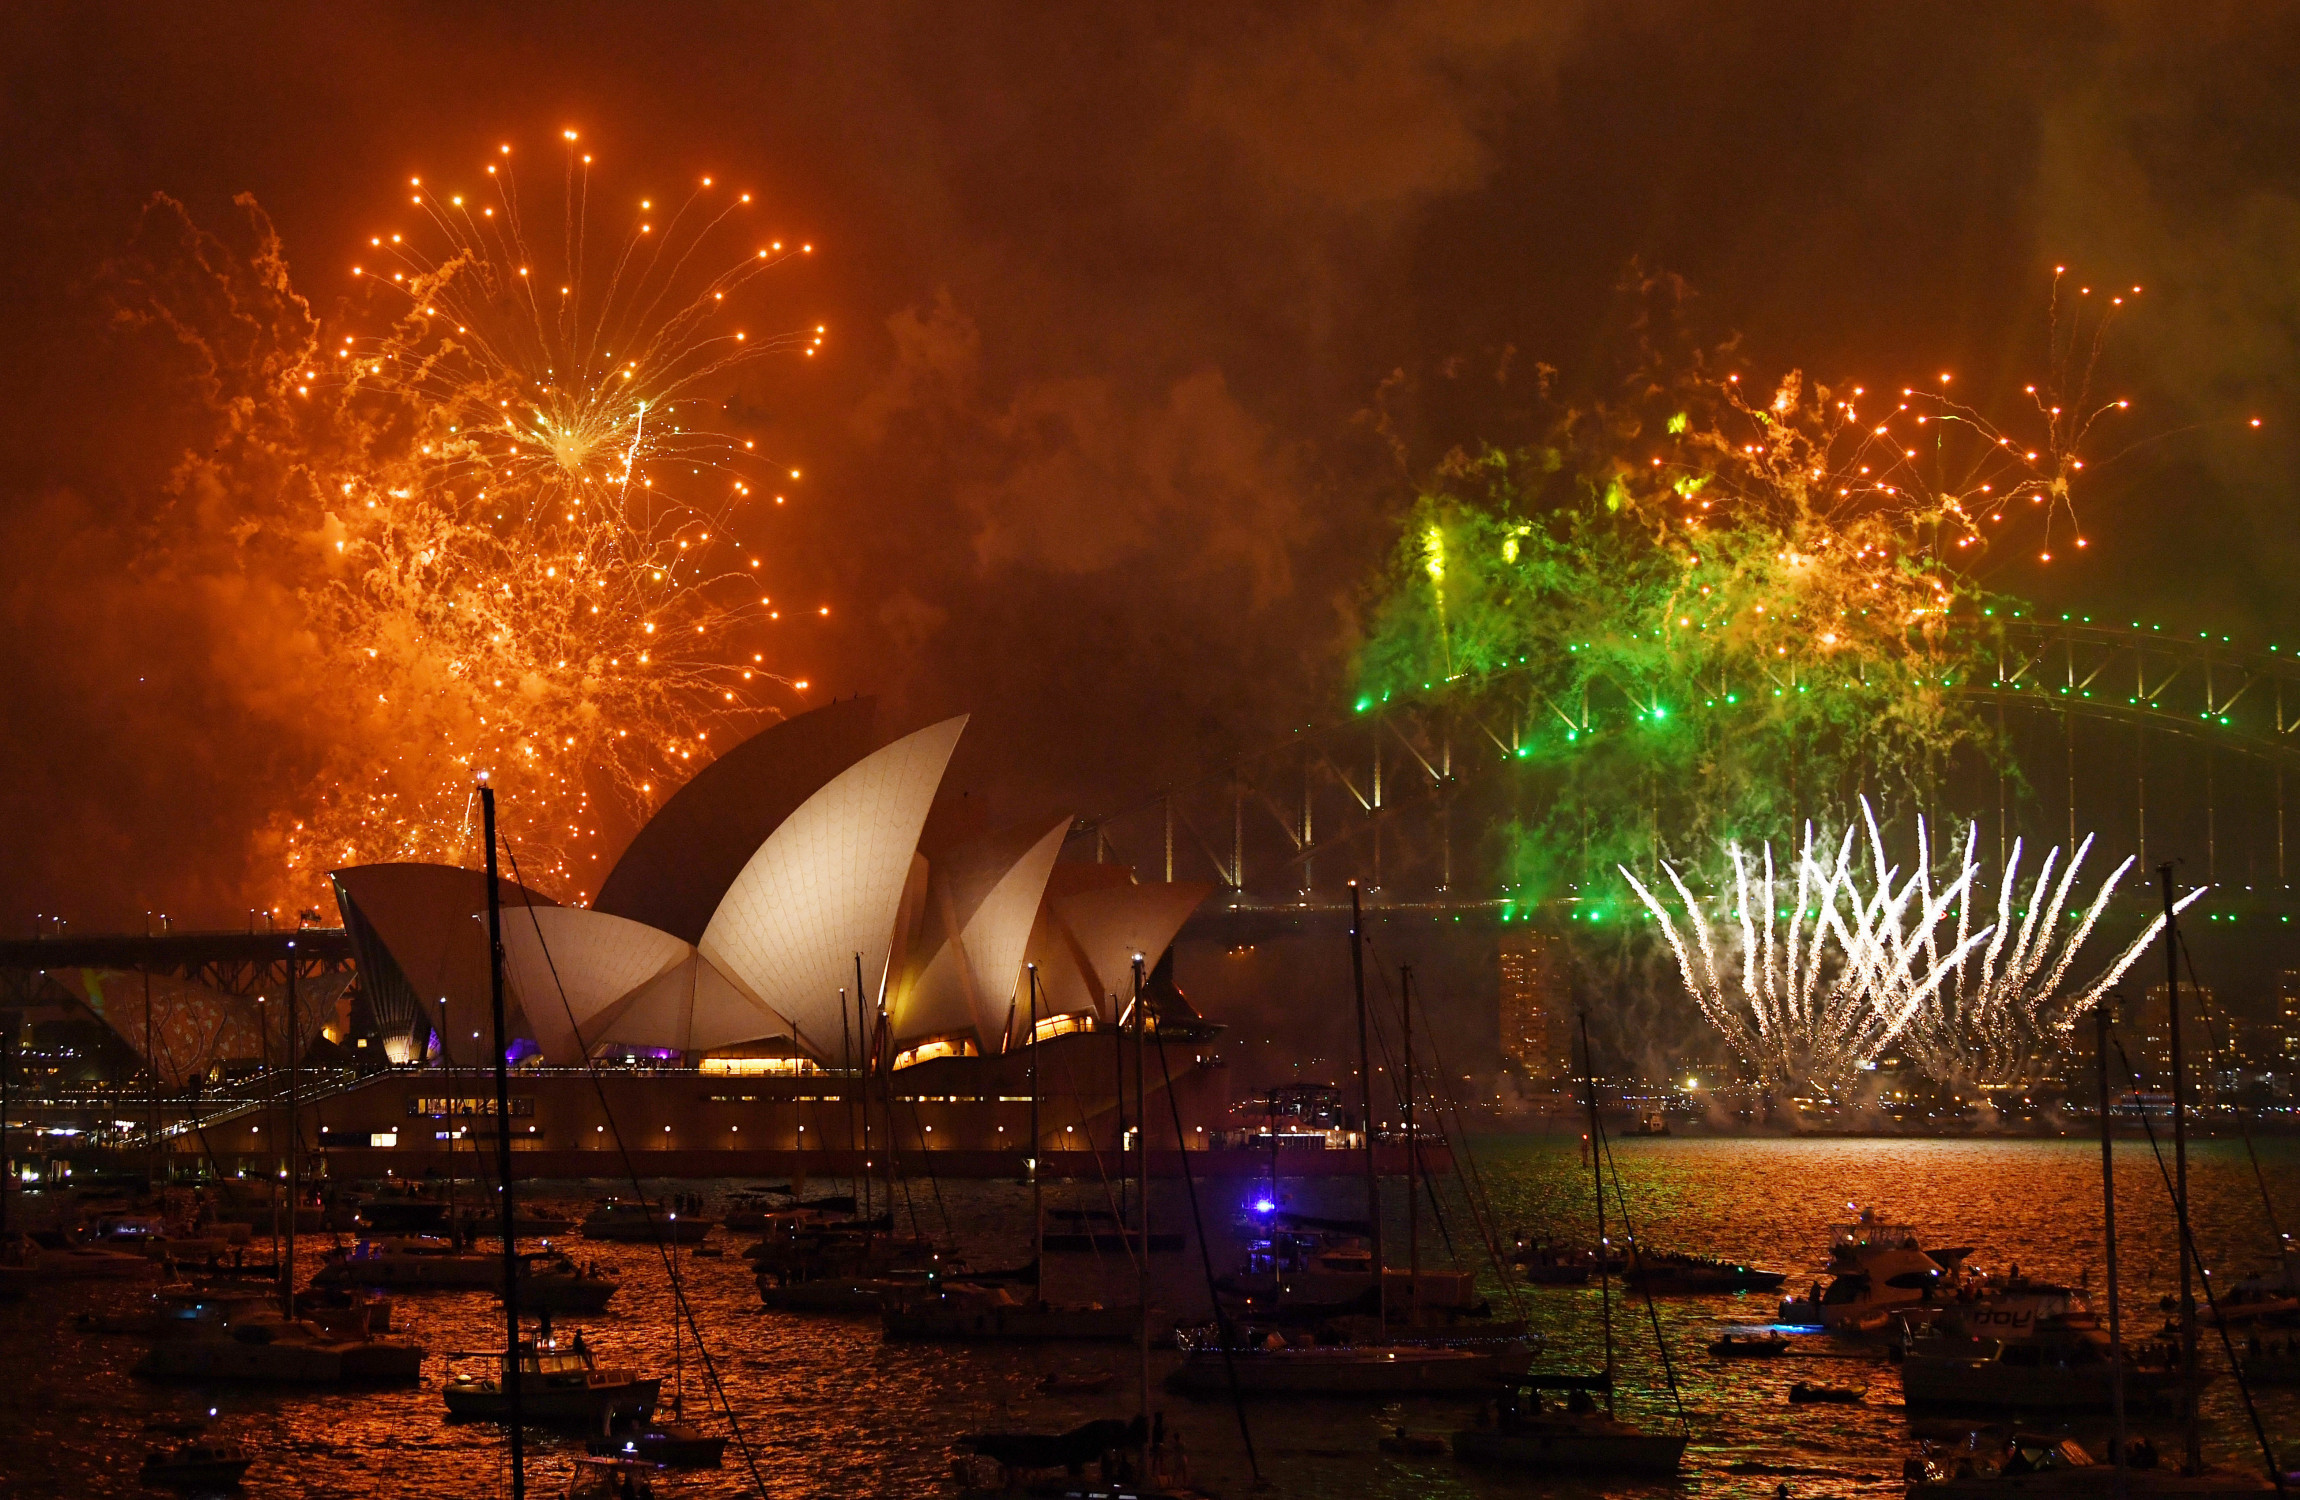 New Zealand welcomes the New Year with a fireworks show